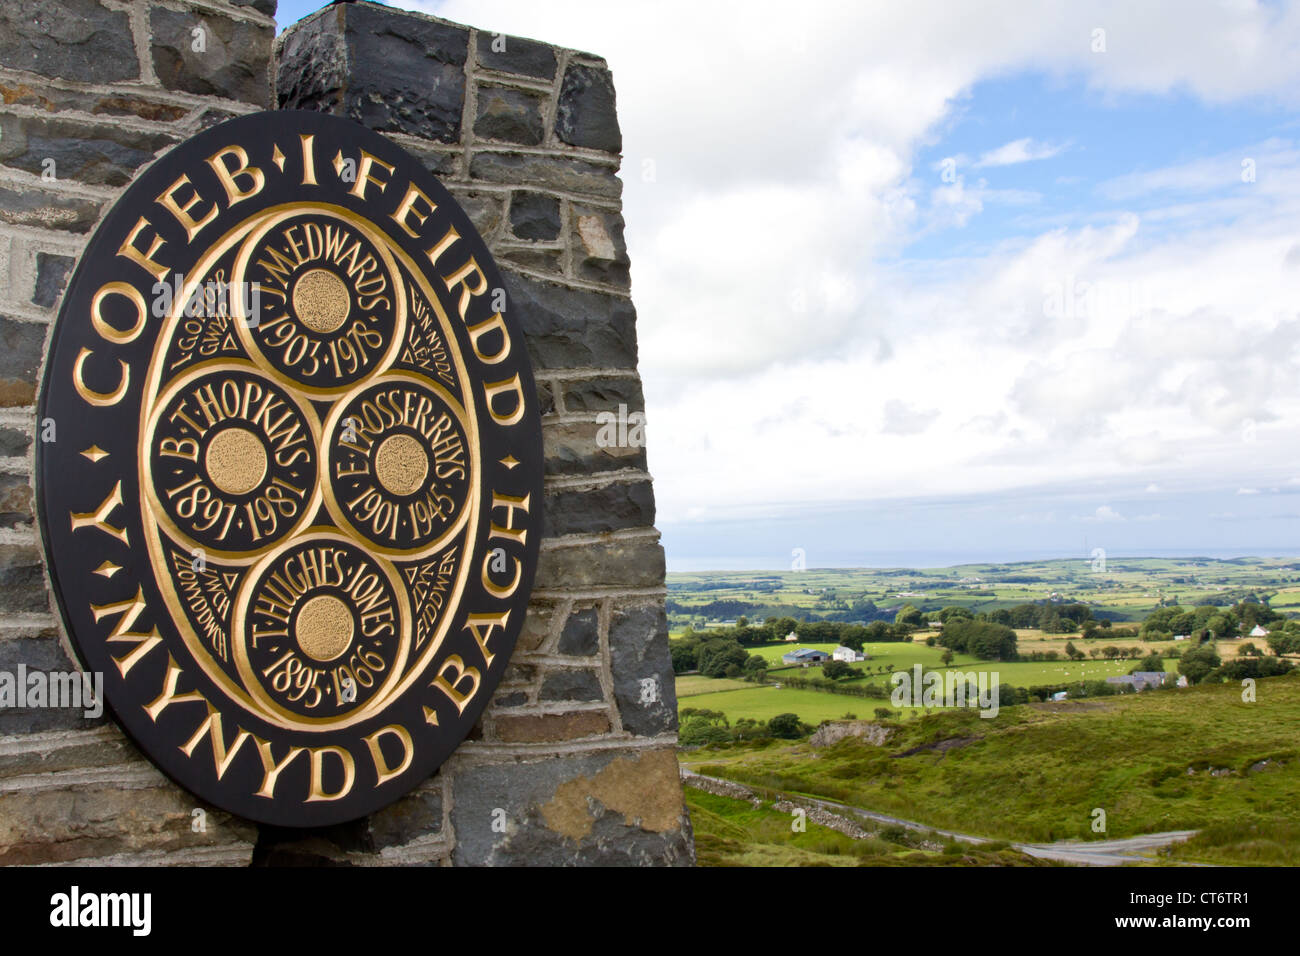 Commemorative plaque to the Welsh poets of Mynydd Bach, Ceredigion. - Stock Image